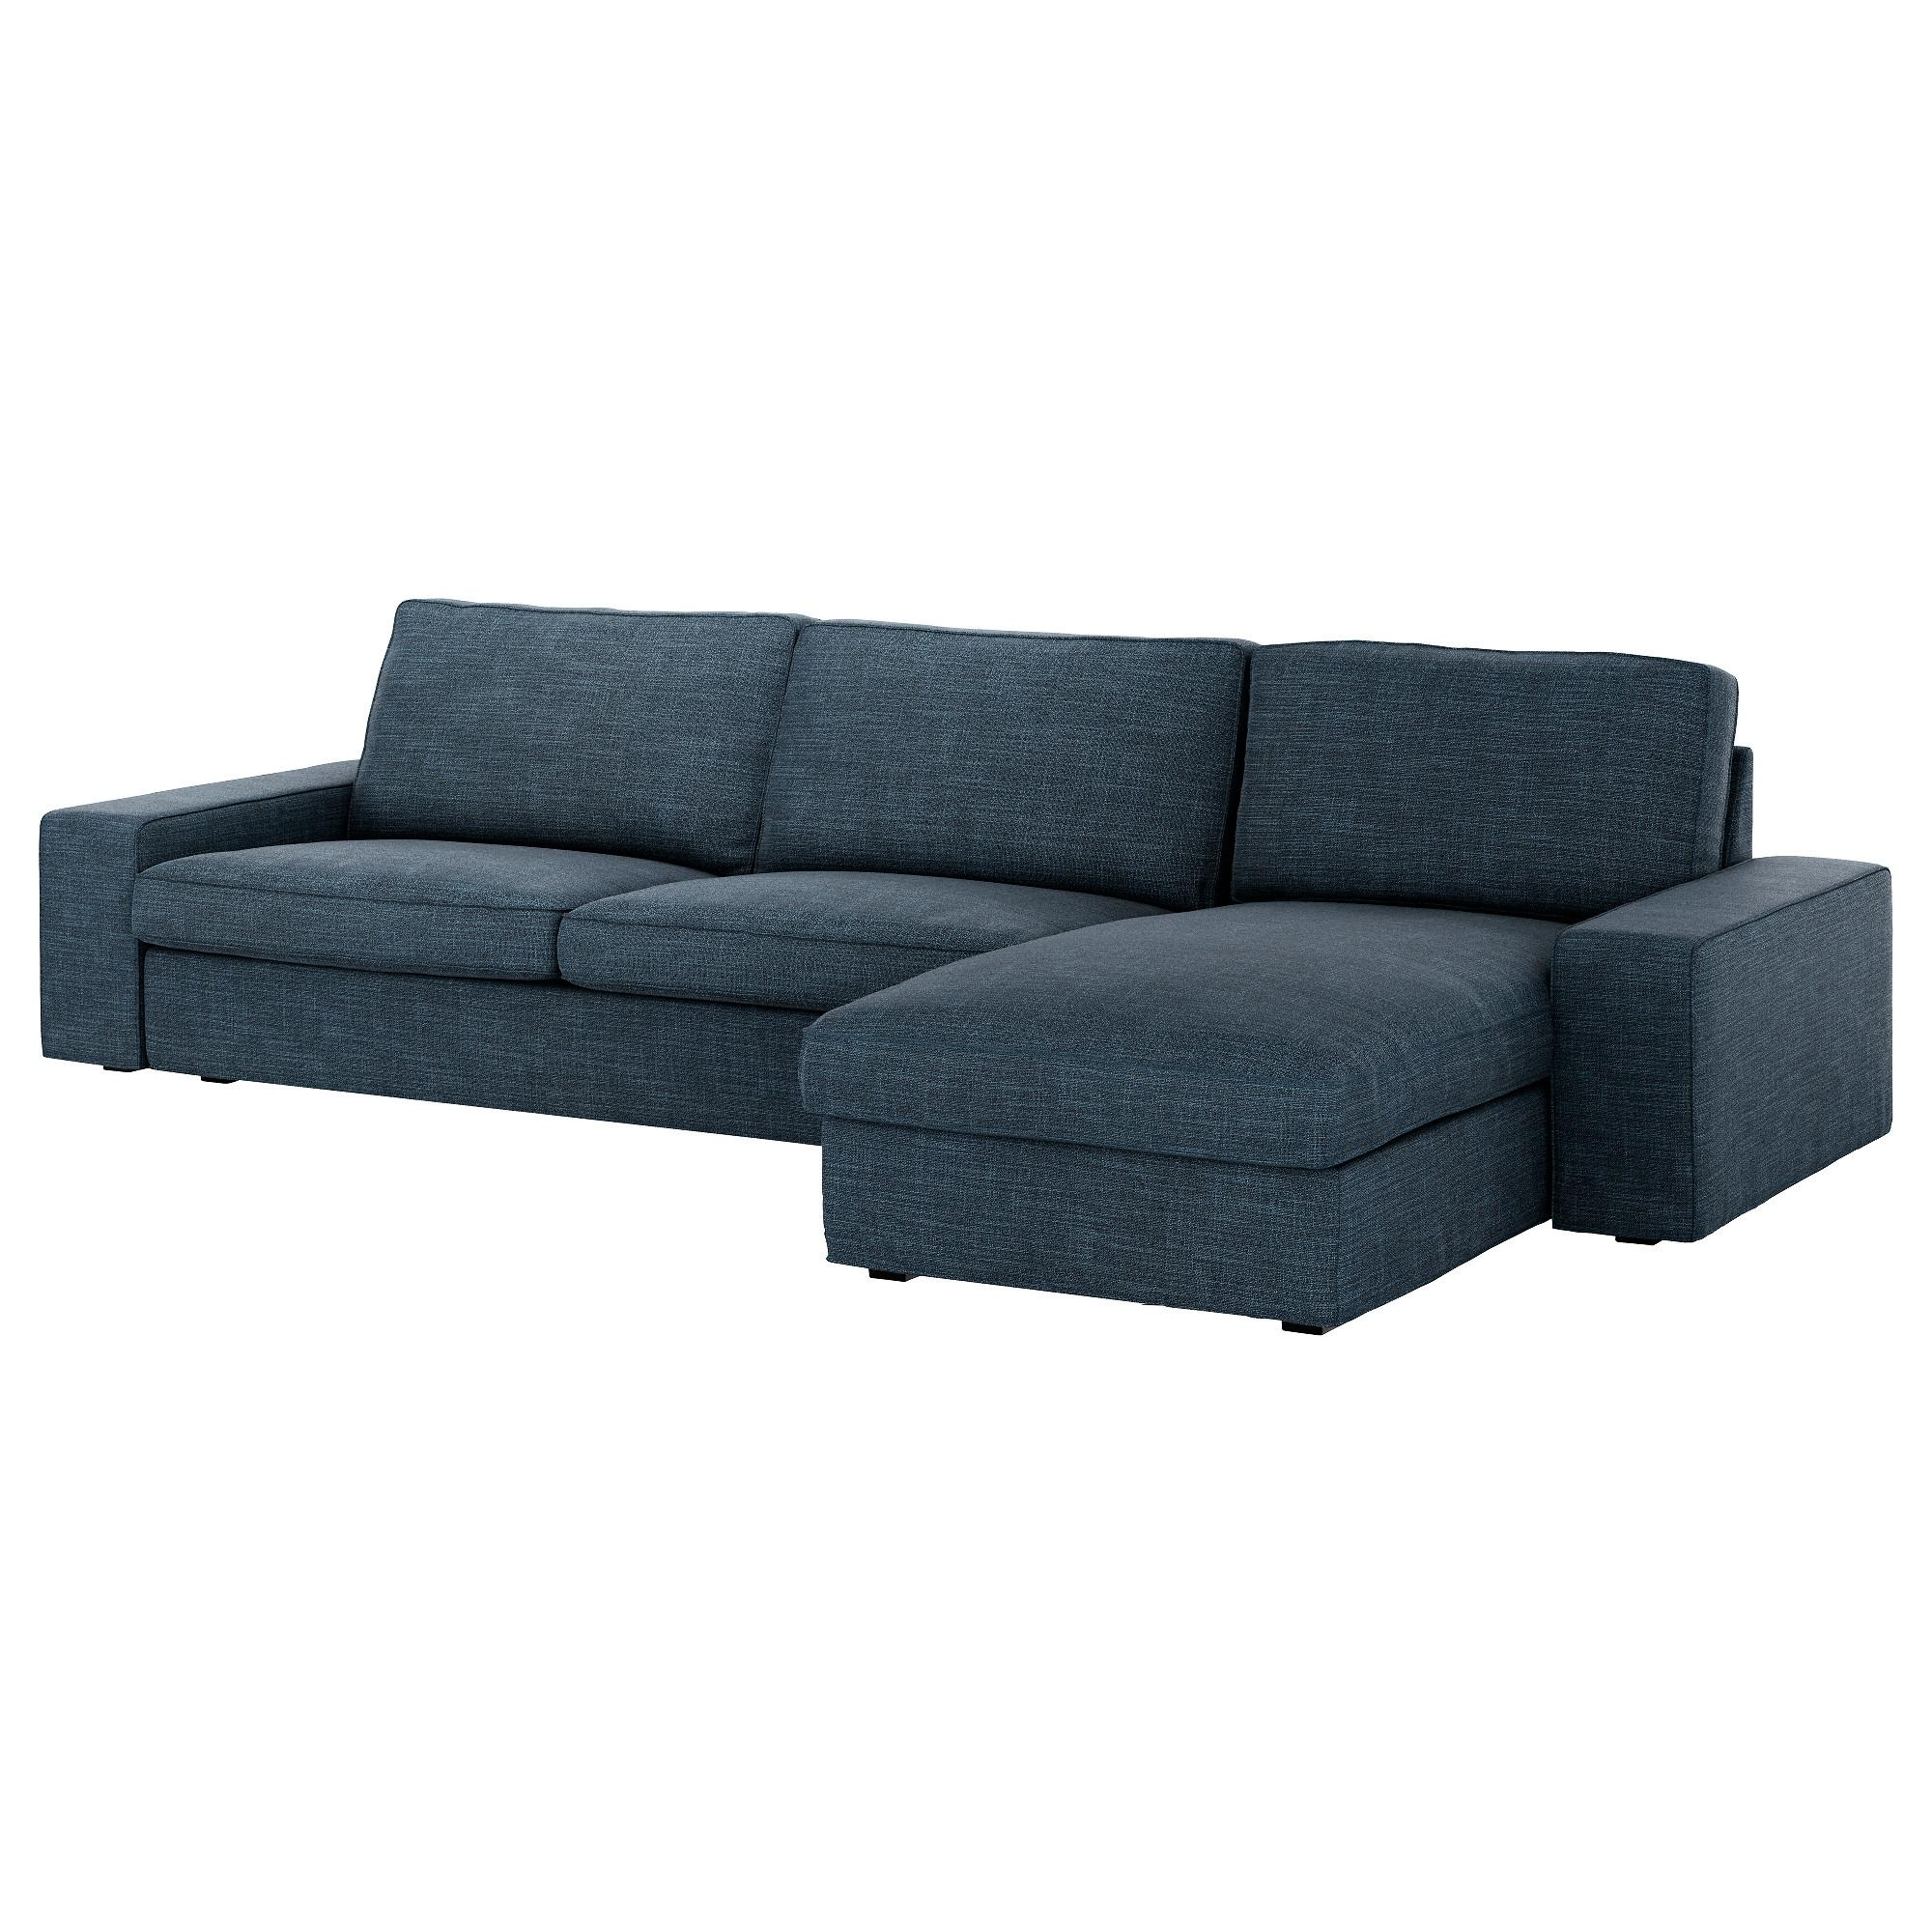 Kivik Three Seat Sofa And Chaise Longue – Orrsta Light Grey – Ikea Throughout Three Seater Sofas (Image 14 of 20)